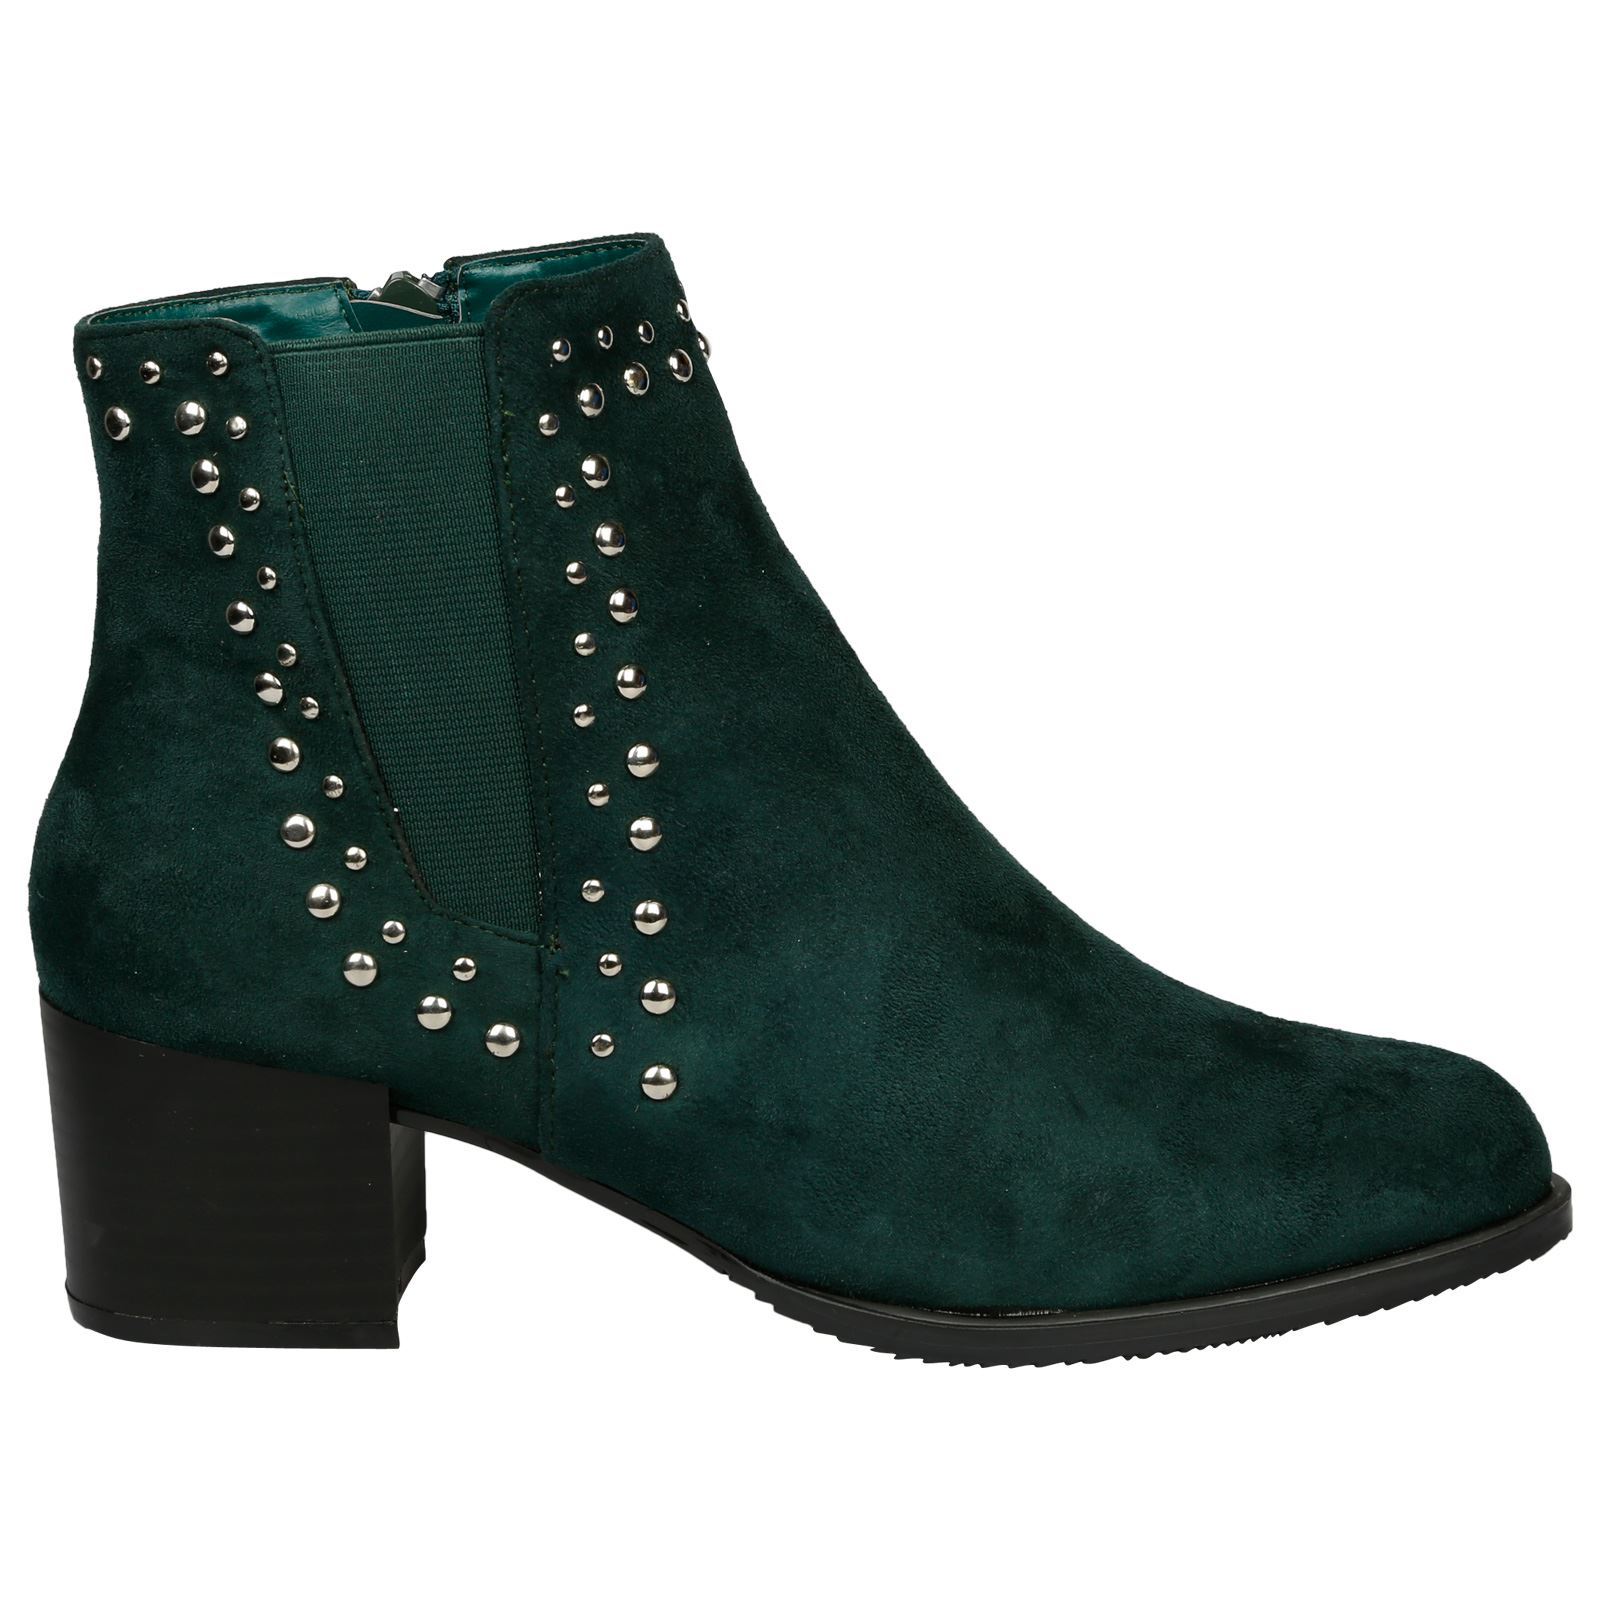 Luna-Womens-Low-Mid-Block-Heel-Studded-Chelsea-Zip-Up-Ankle-Boots-Casual-Ladies thumbnail 11